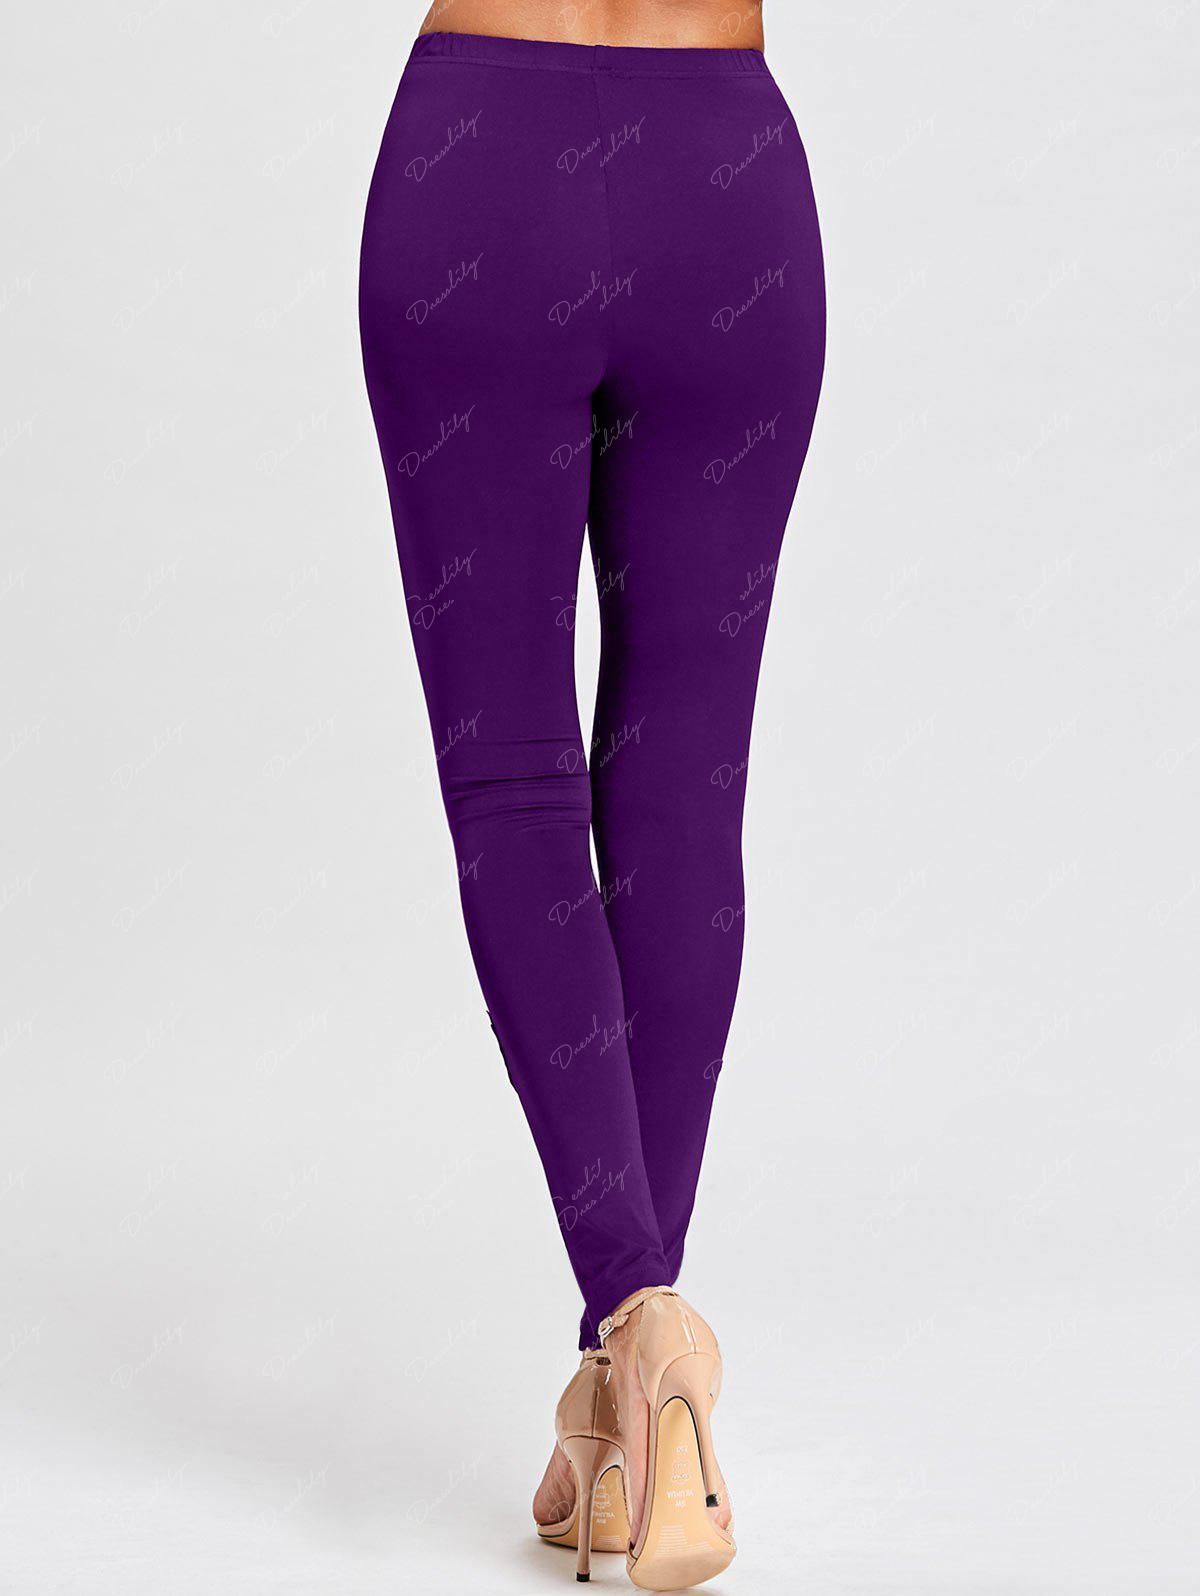 Tight Hollow Out Lace Panel Leggings - PURPLE XL